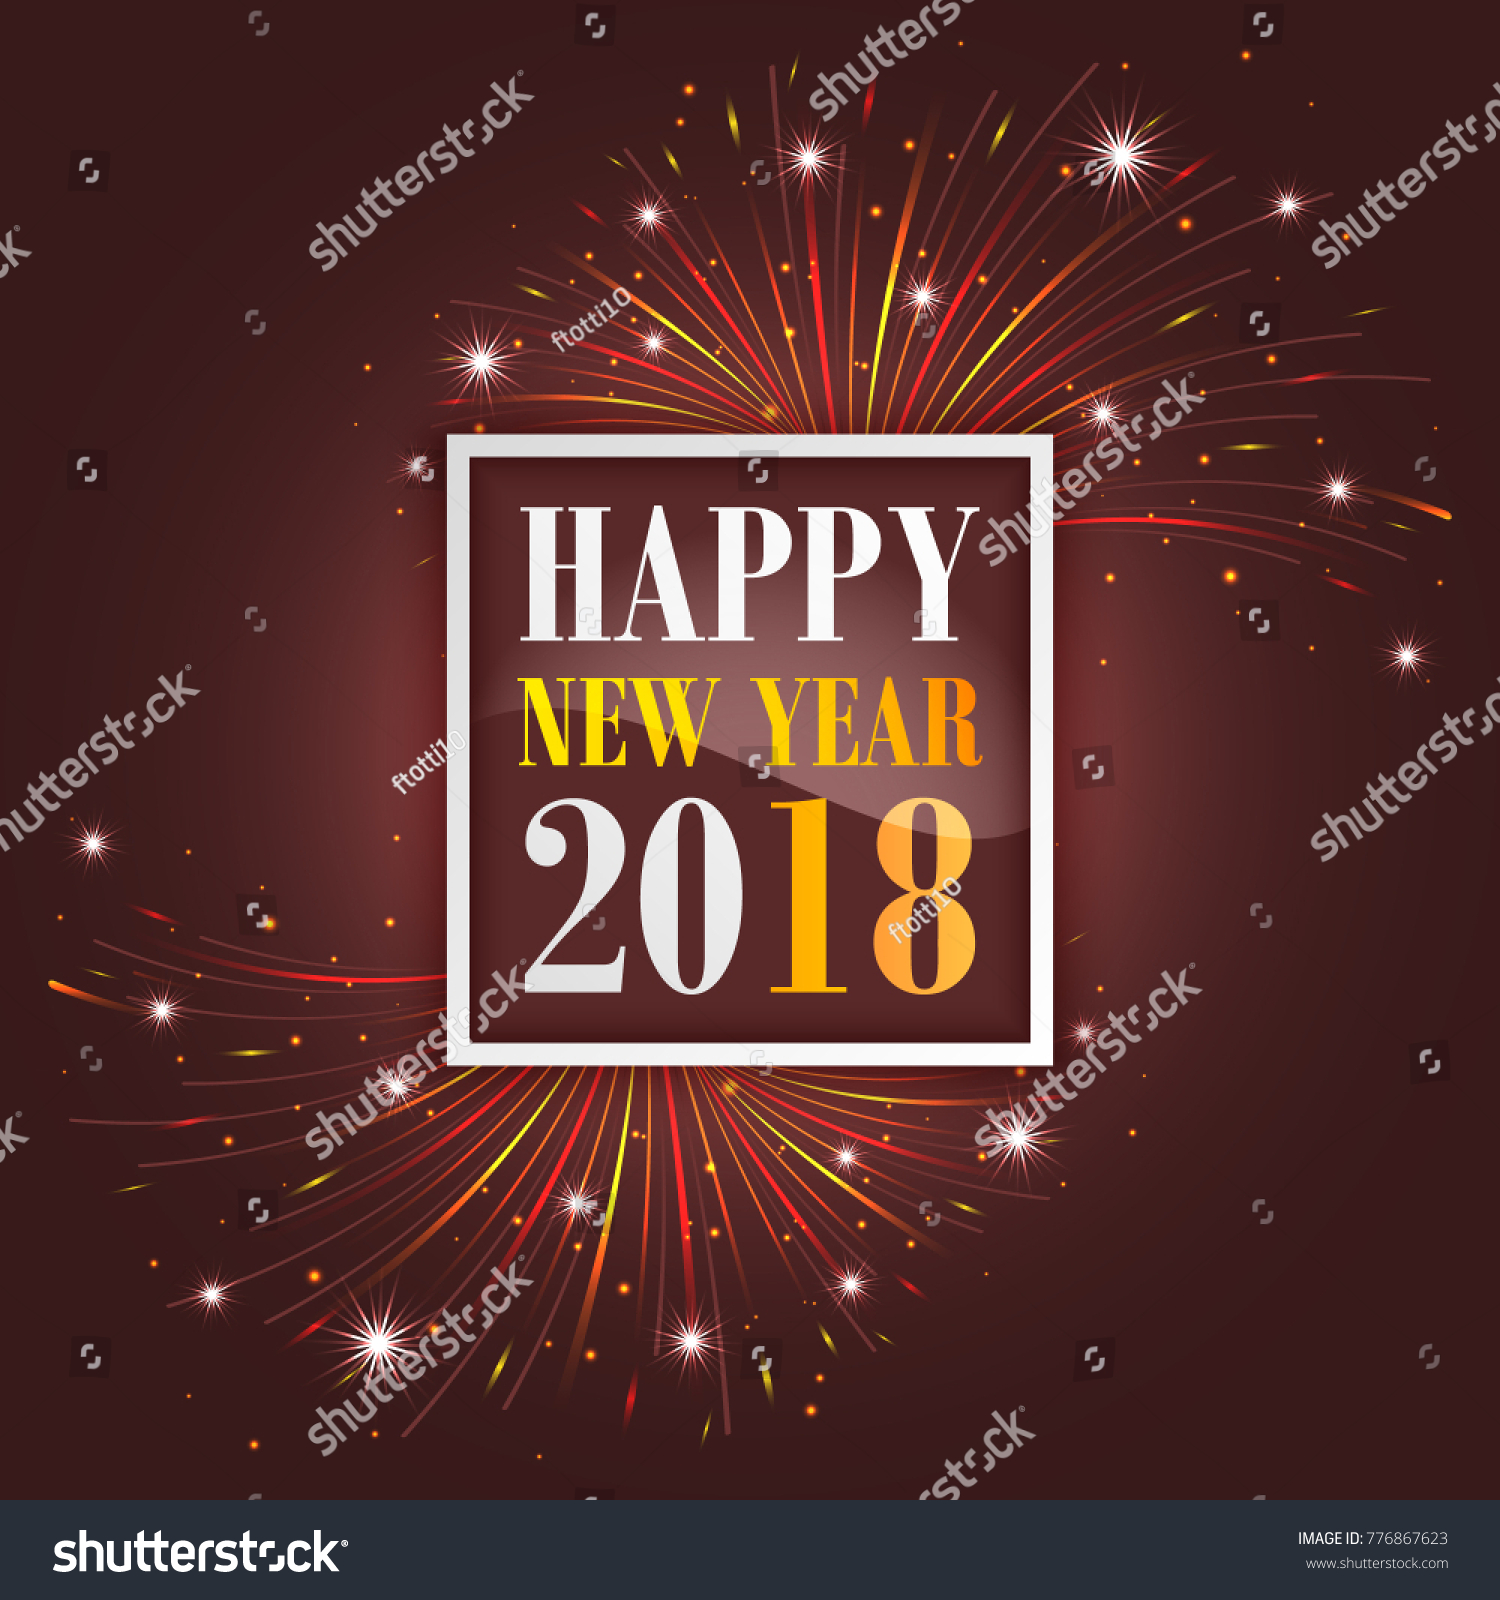 New year greetings 2018 fireworks sparkle stock vector royalty free new year greetings 2018 with fireworks sparkle stars and glitter vector illustration m4hsunfo